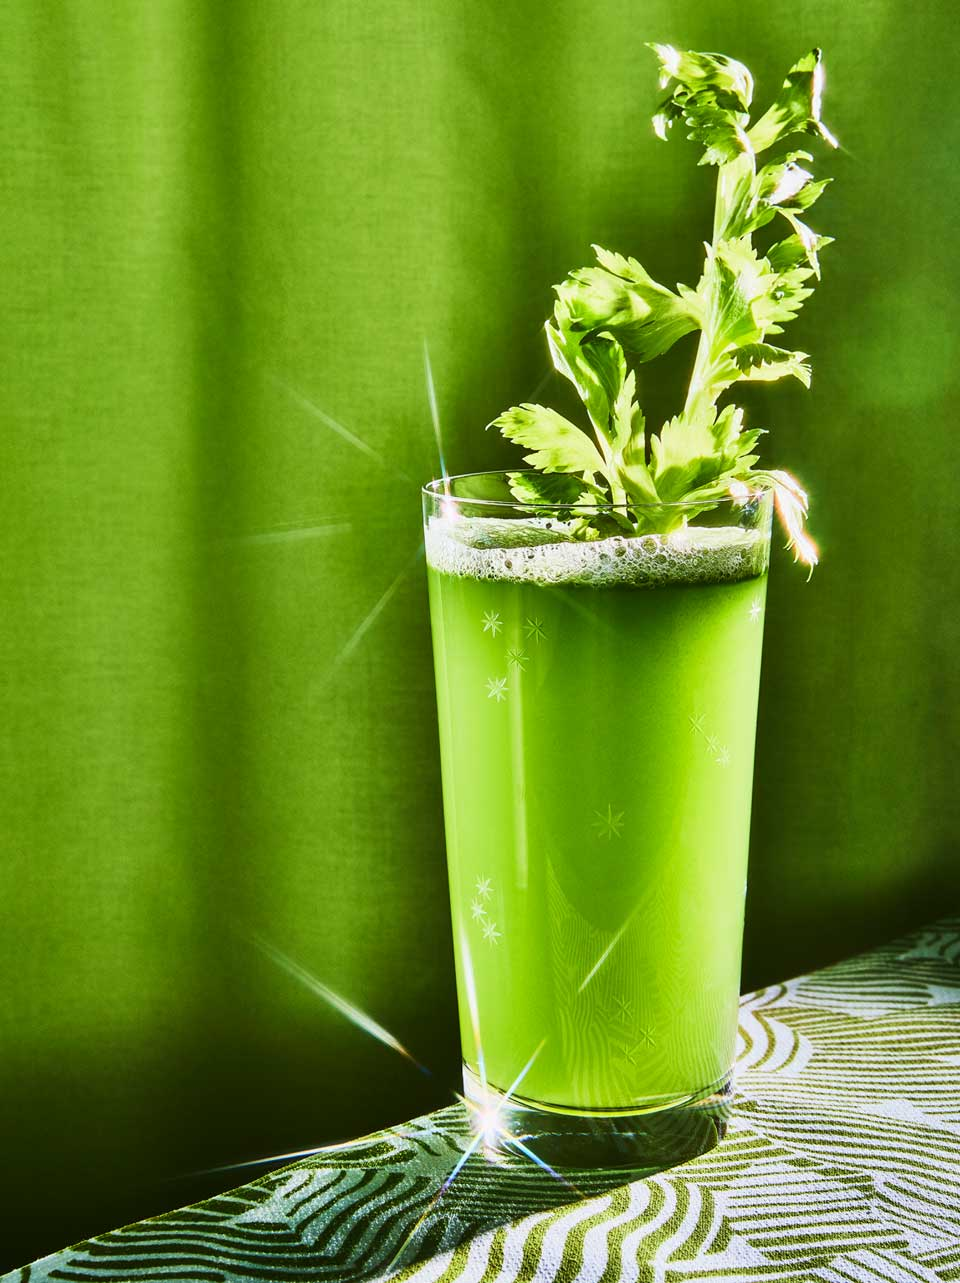 Celery Juice: The Health Benefits, Side Effects and Science